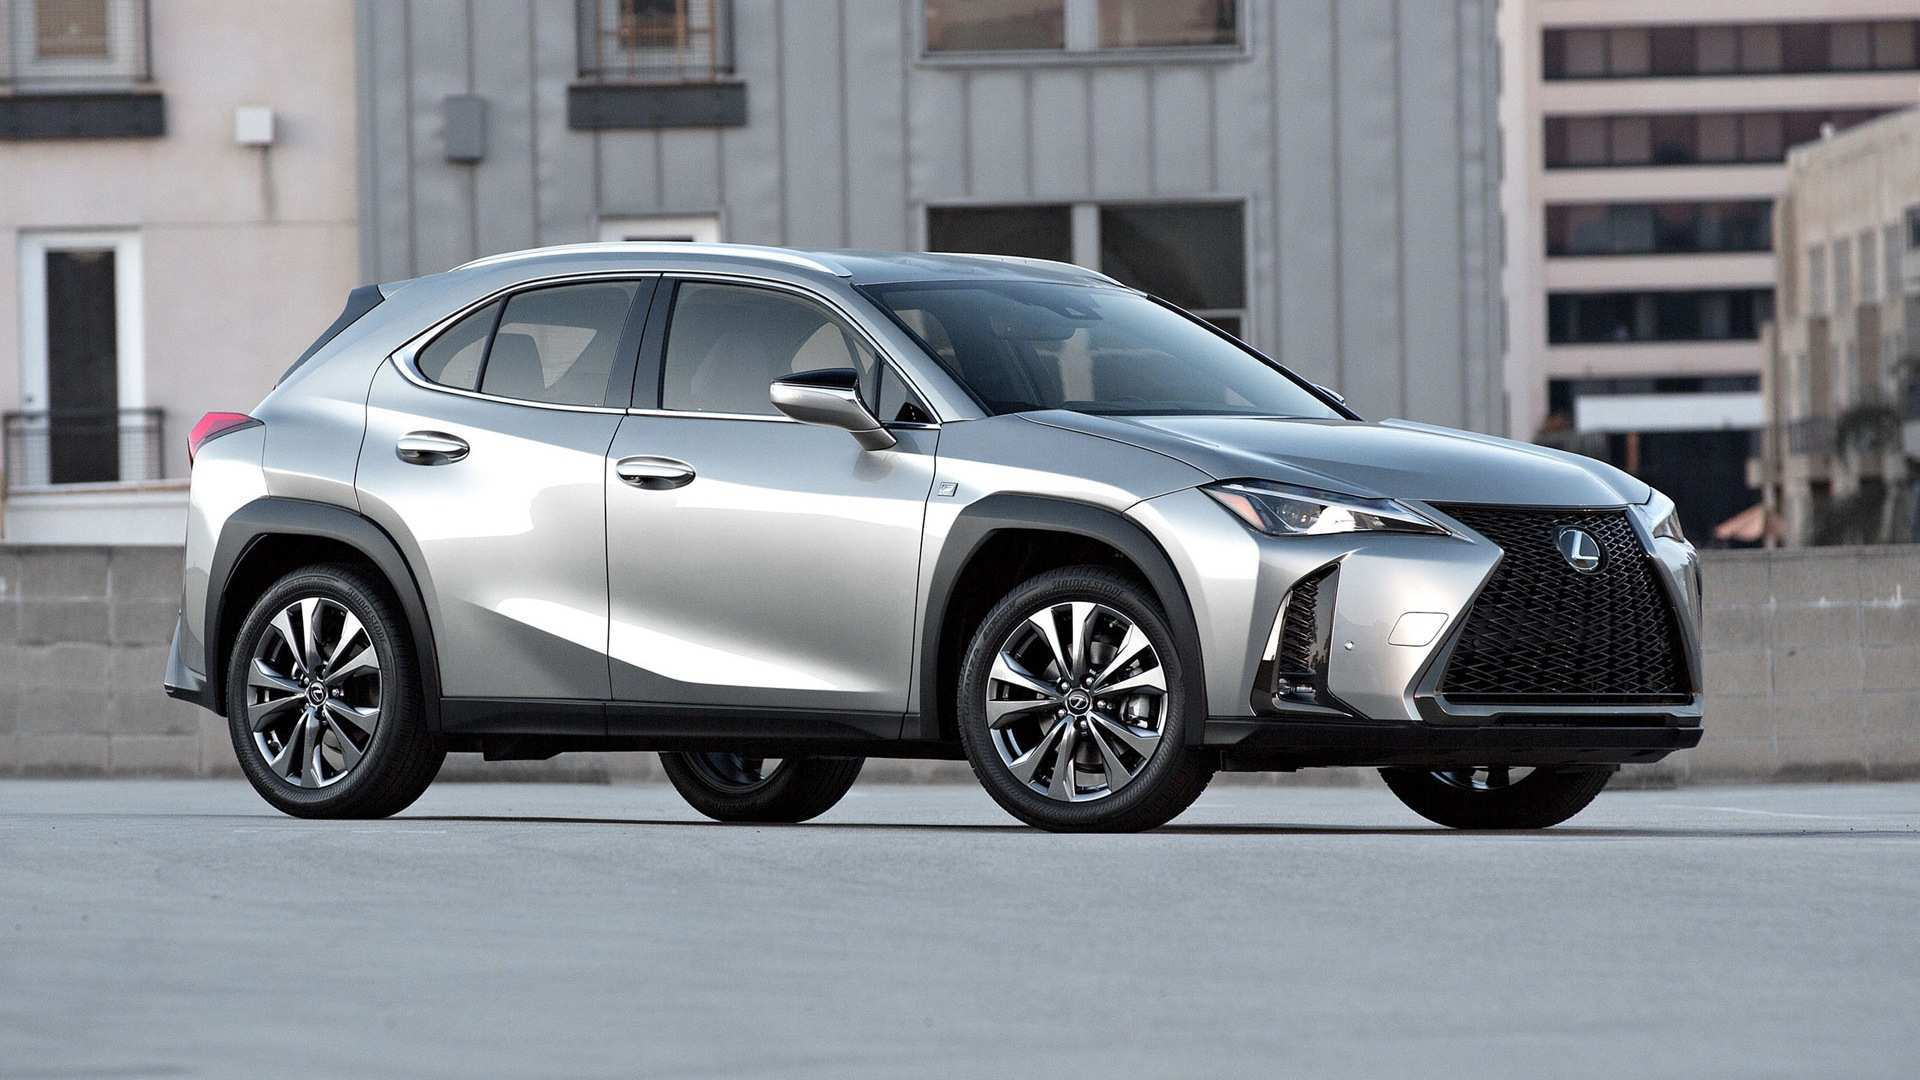 92 Great Lexus Ux 2020 Dimensions Release Date for Lexus Ux 2020 Dimensions